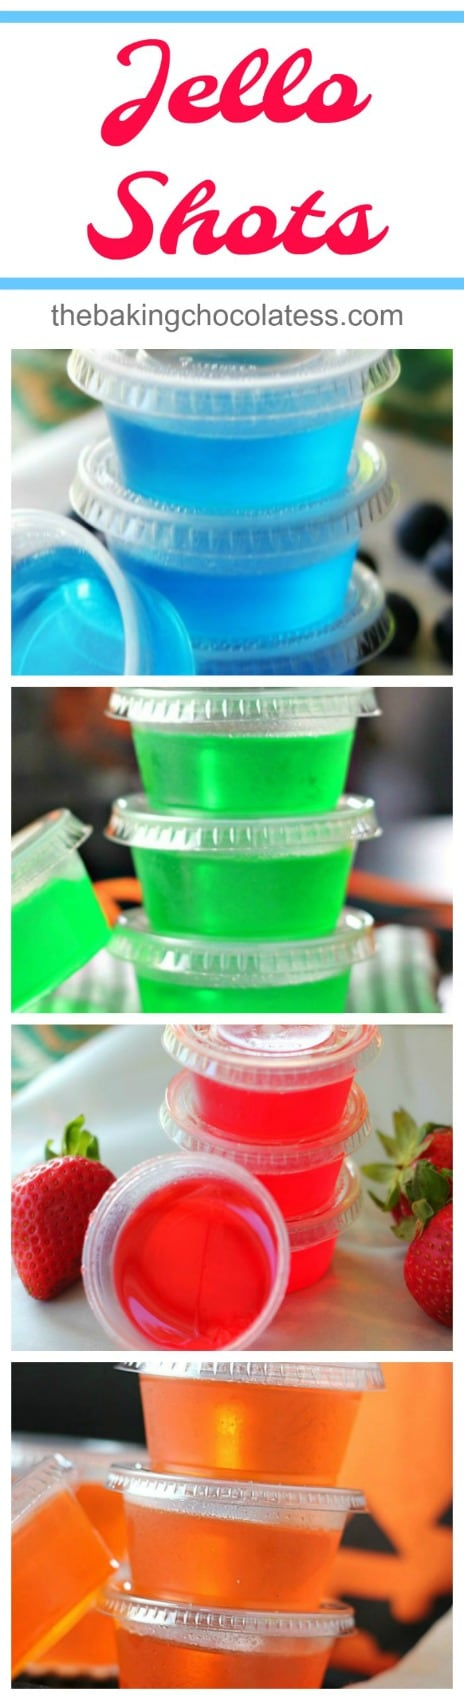 Jell-O Shots - Jell-O shots are easy to make.  All you do is add one small package of your favorite Jell-O to 1 cup boiling water or juice, whisking well and then add 1 cup of your choice of alcohol.   It's Party Time and fun times!